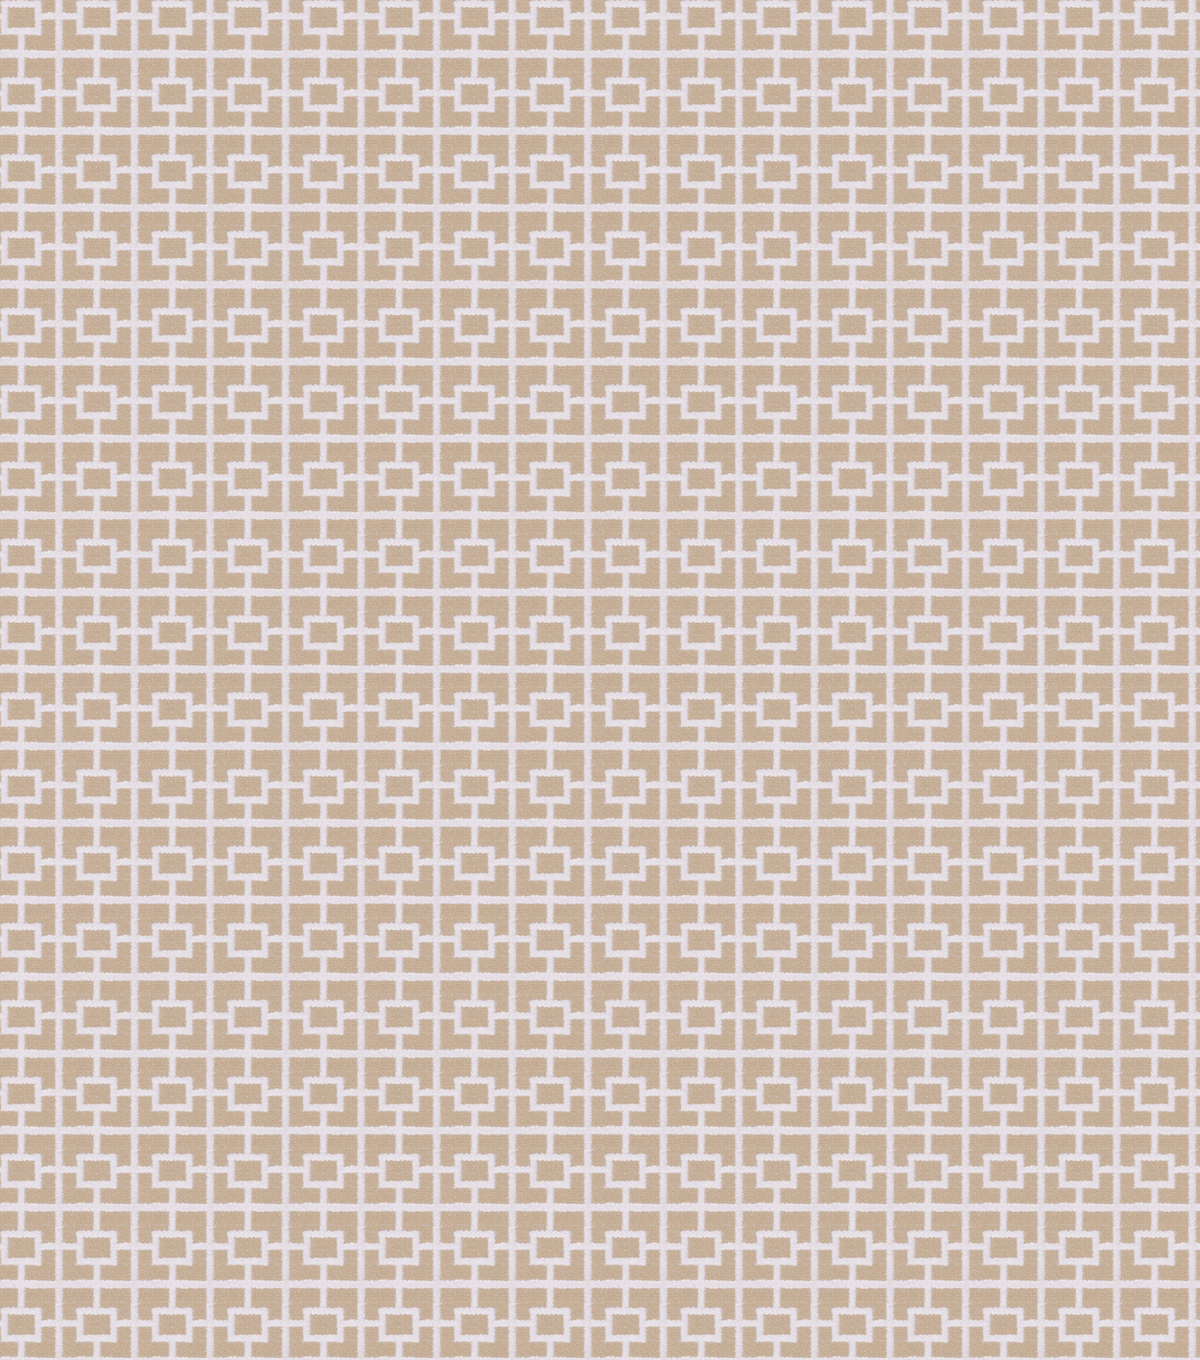 Eaton Square Multi-Purpose Decor Fabric 54\u0022-Fabulous/Natural